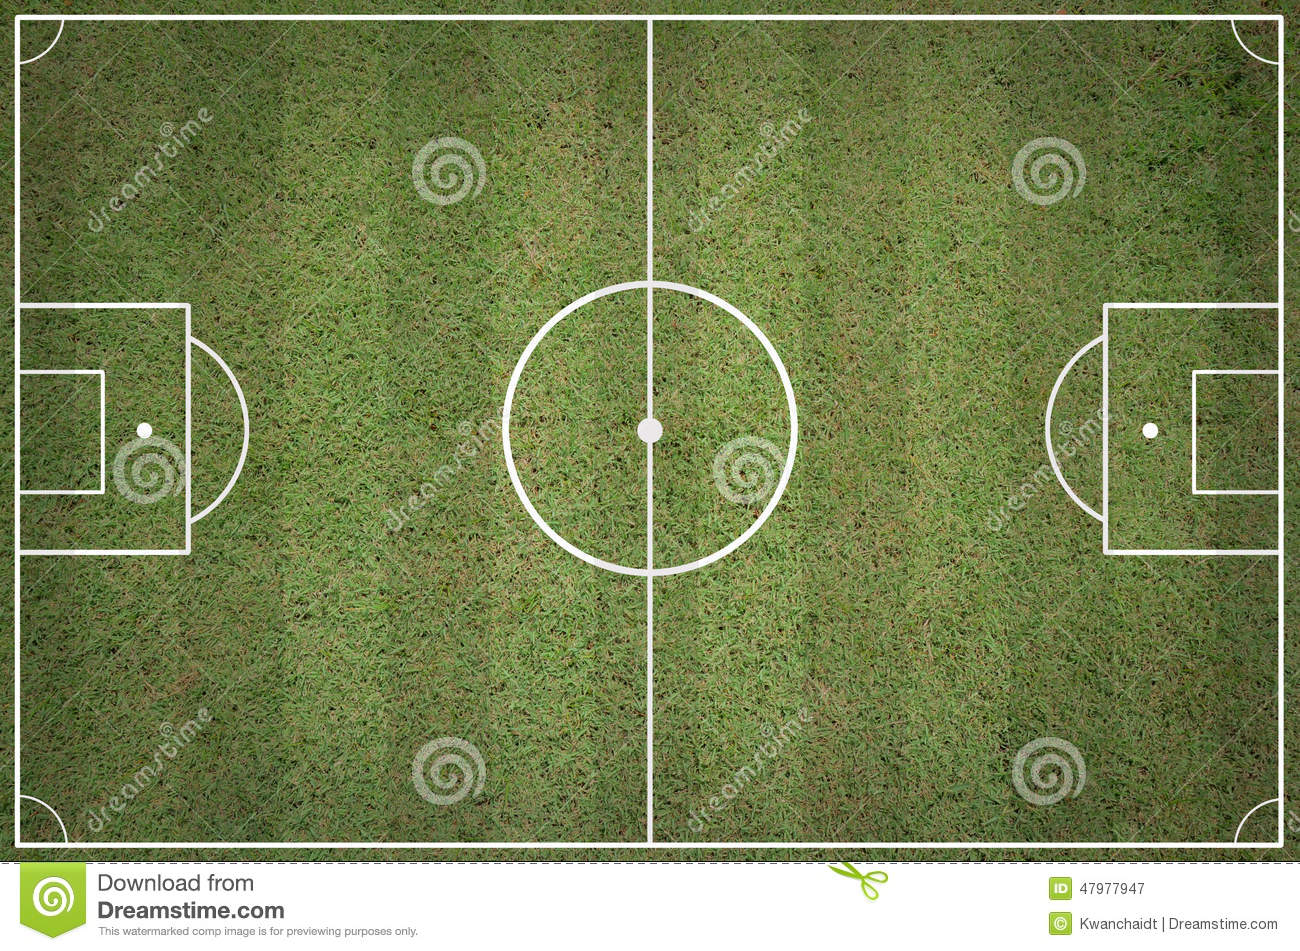 Soccer Field Layout Stock Image Of Game Competition 47977947 American Football Diagram